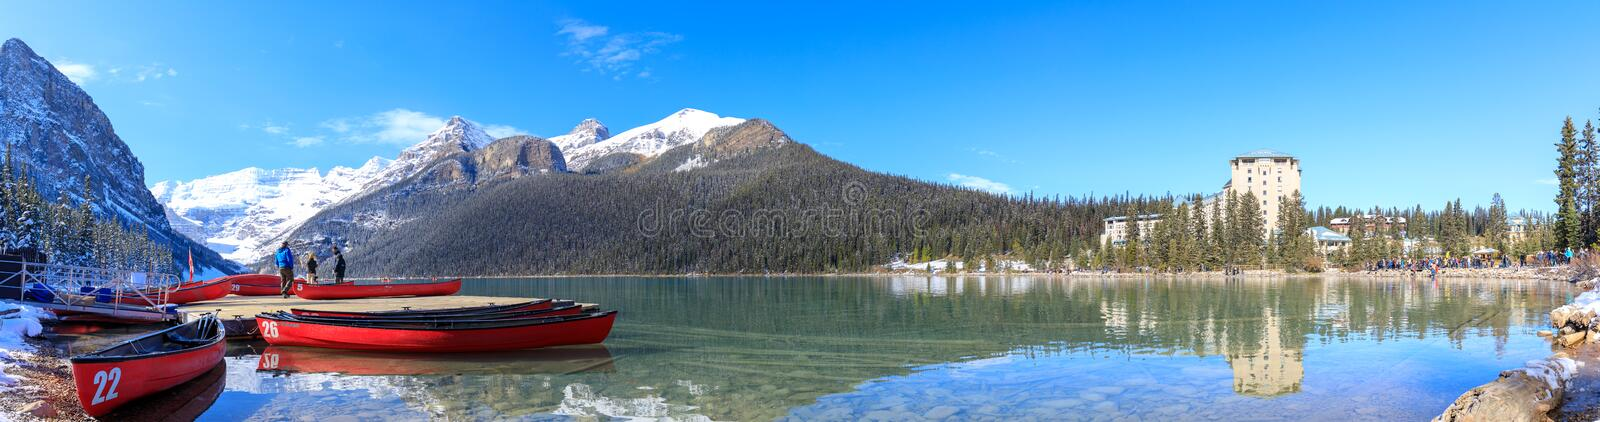 Red canoes at Lake Louise with rocky mountain in Banff national park. Alberta, Canada - October 7, 2018 : Red canoes at Lake Louise with rocky mountain in Banff royalty free stock photography